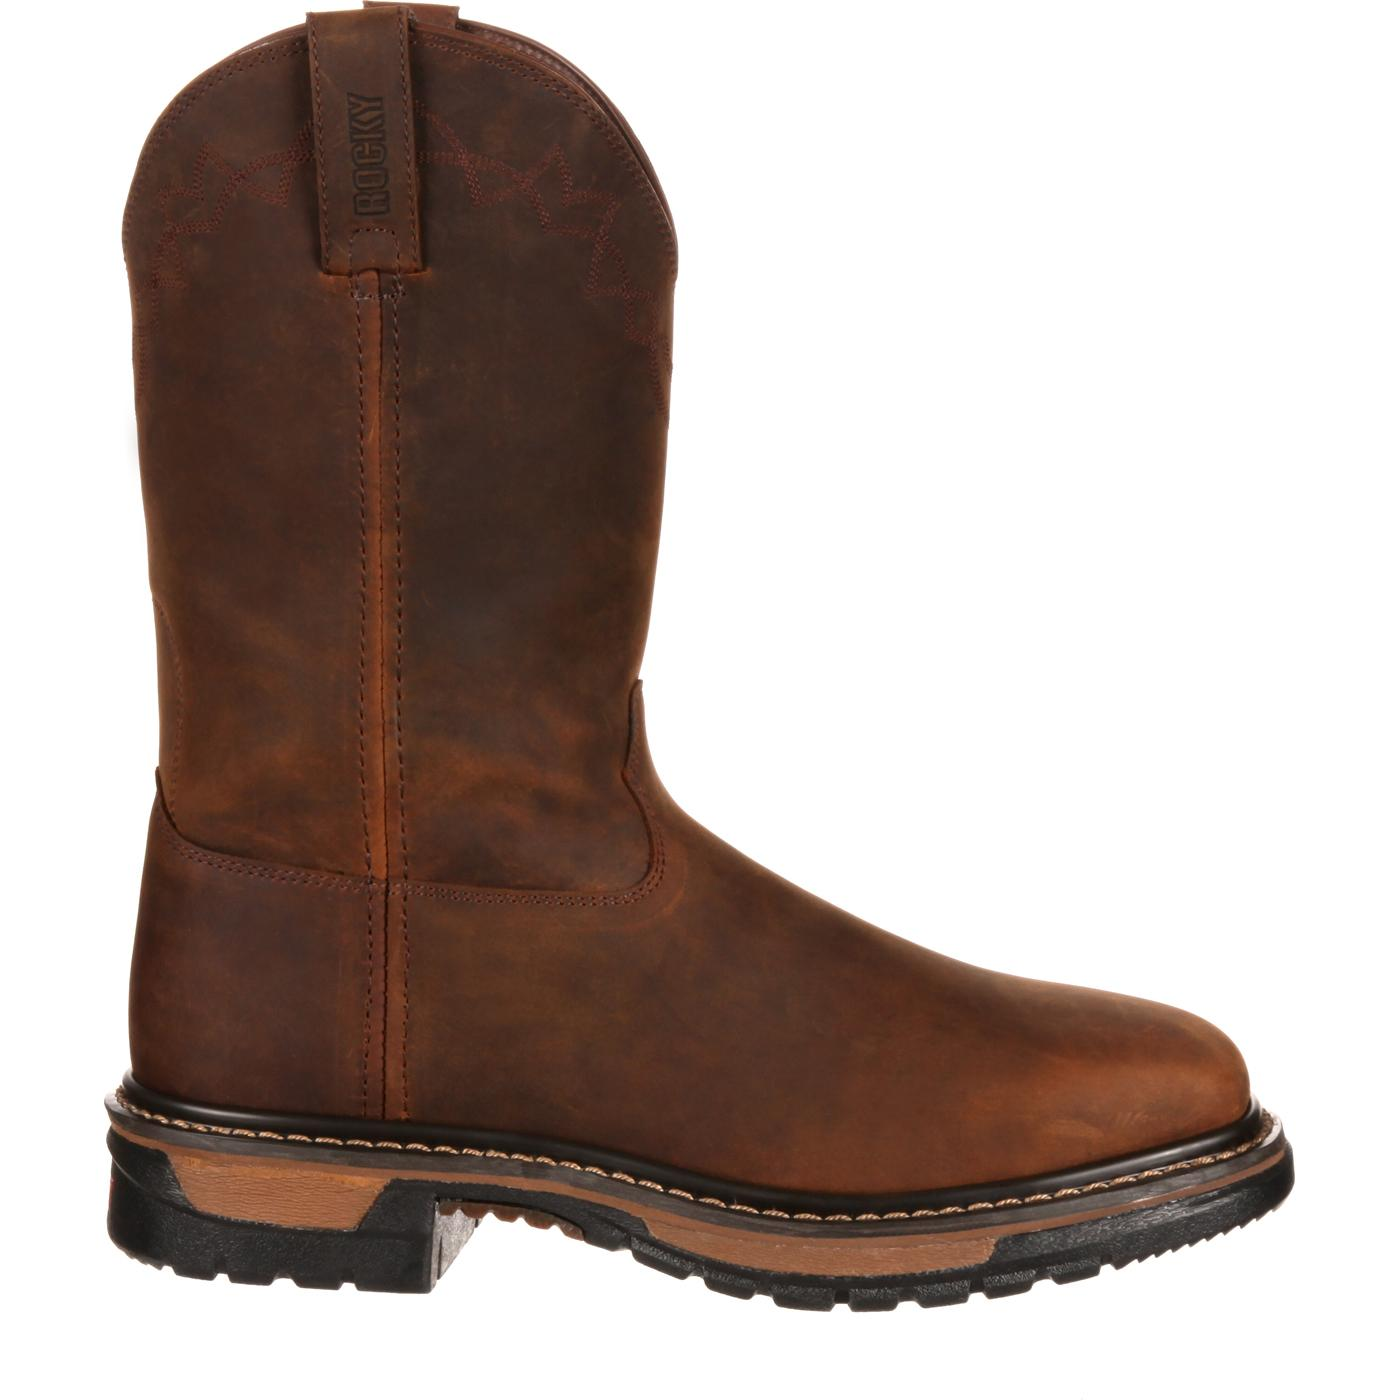 Rocky Original Ride Steel Toe Comfort Western Boot, RKW0117